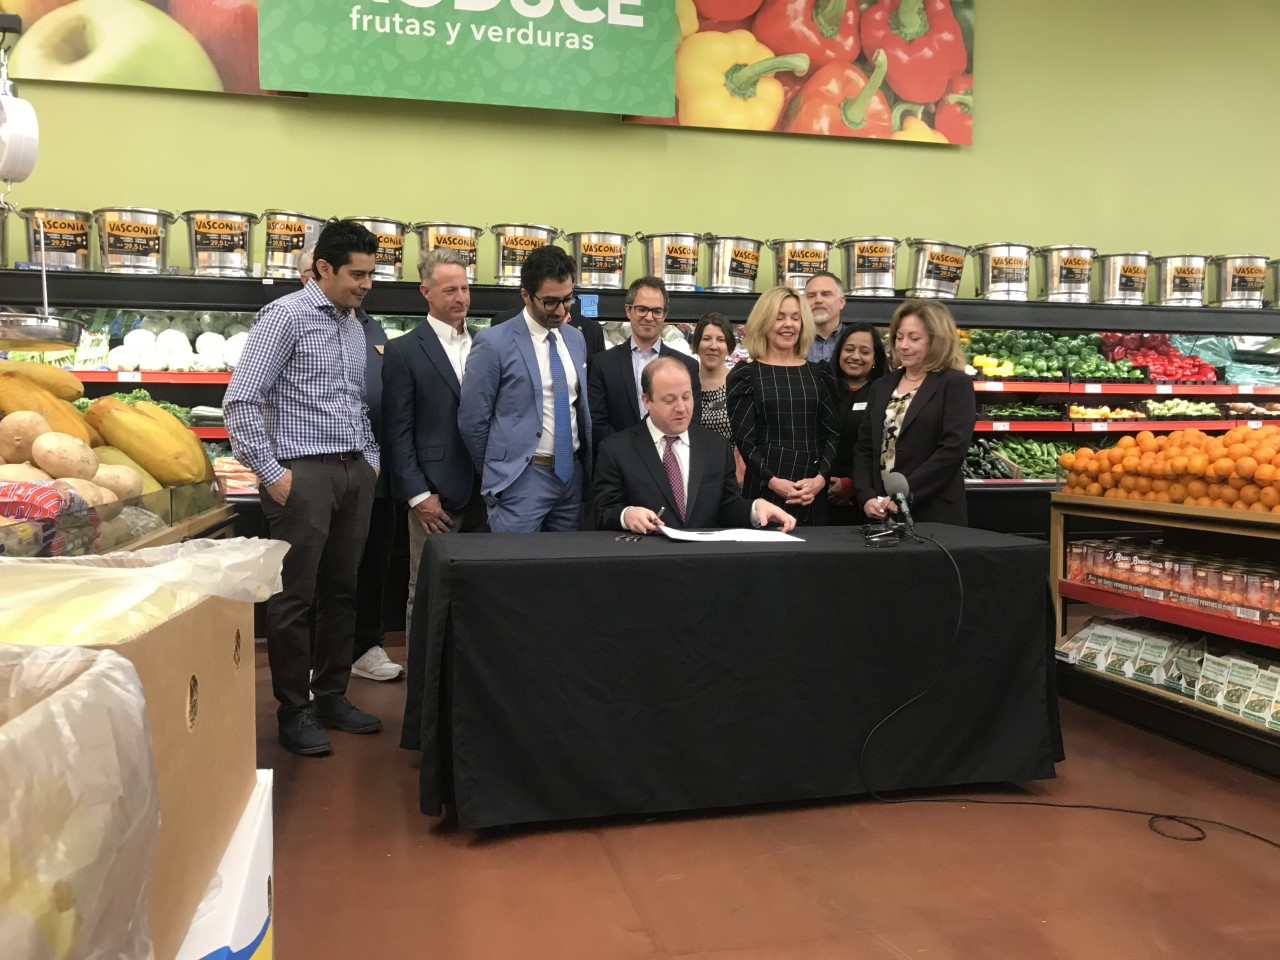 Gov. Jared Polis signs an executive order creating the Colorado Commission on Employee Ownership in Colorado Springs Wednesday morning. Brandon Thom